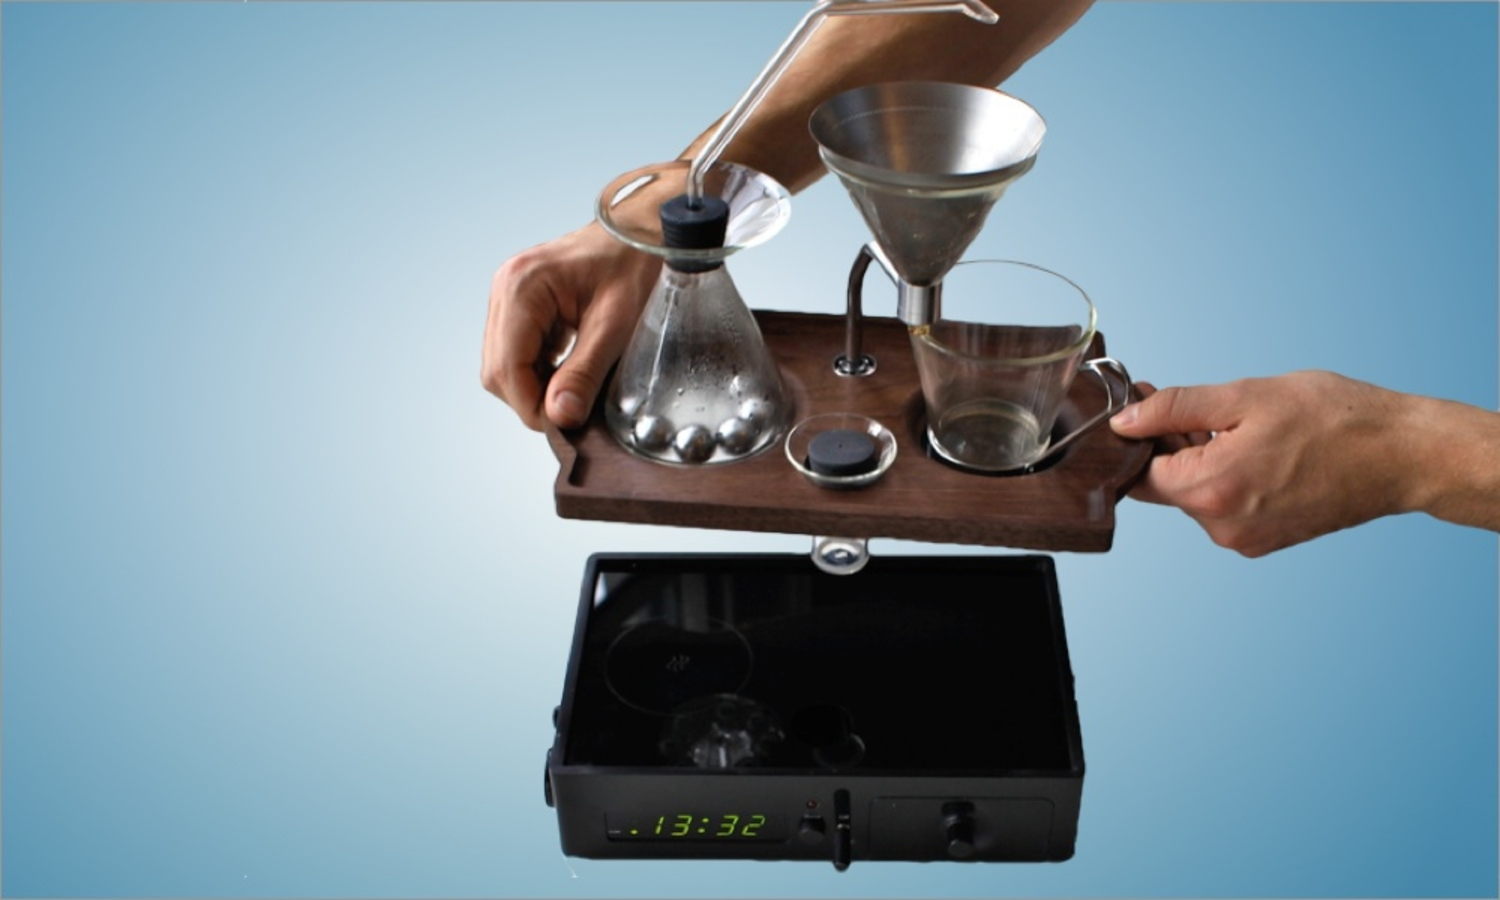 This Alarm Clock Wakes You Up With Freshly Brewed Coffee